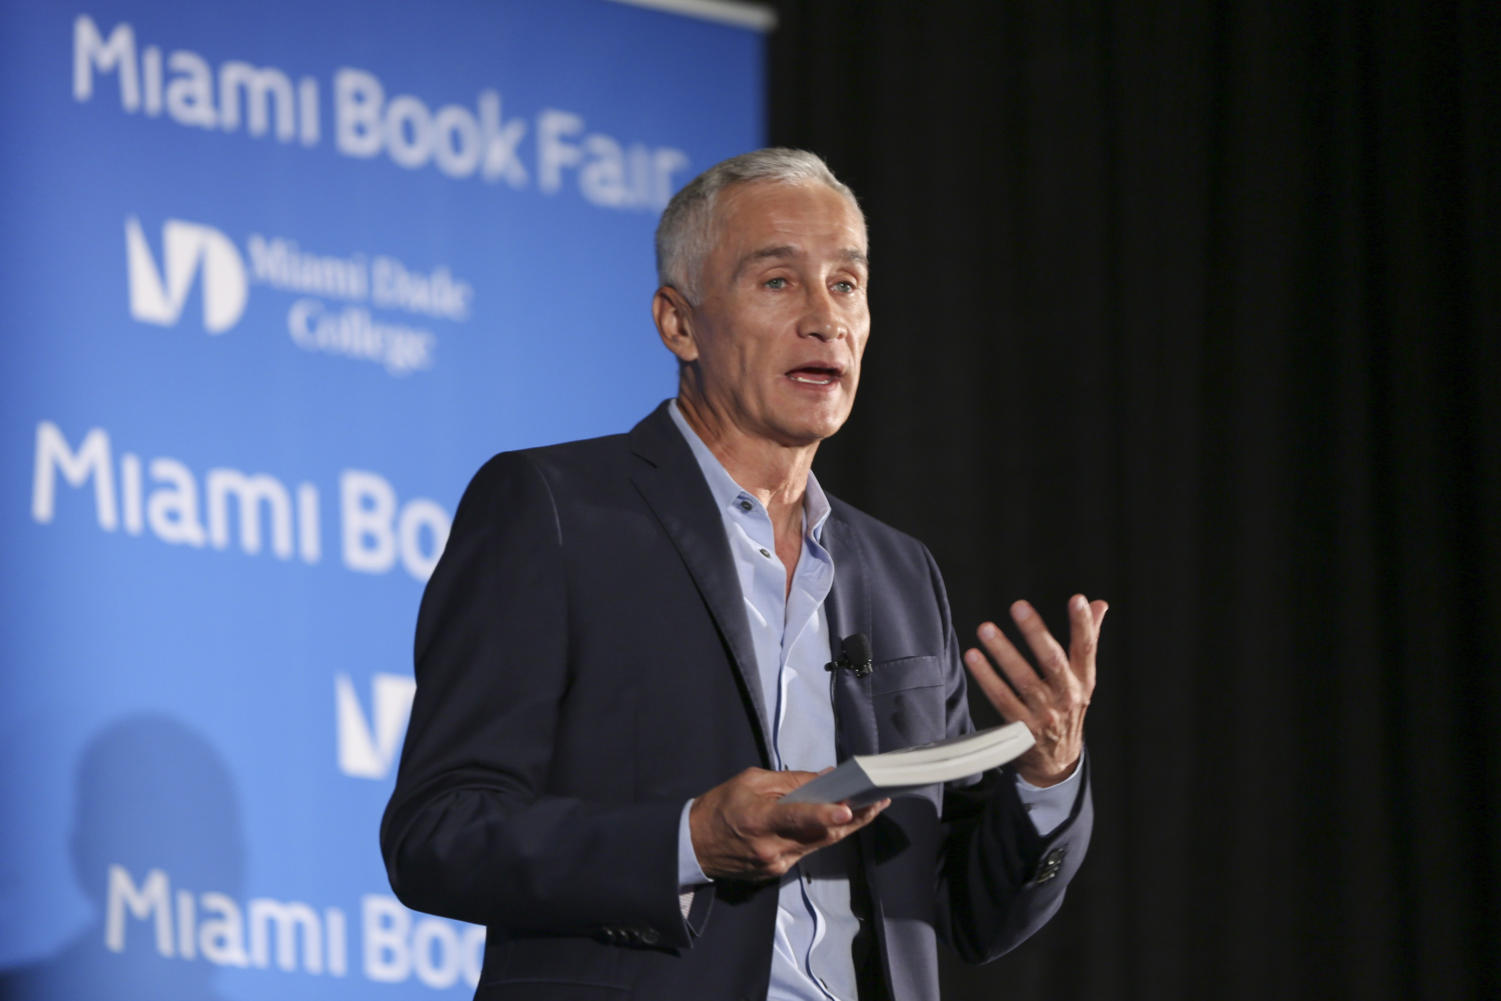 Jorge Ramos speaks on Sunday, Nov. 13, 2016 during the Miami Book Fair at the Miami Dade College Wolfson Campus in downtown Miami, Fla.